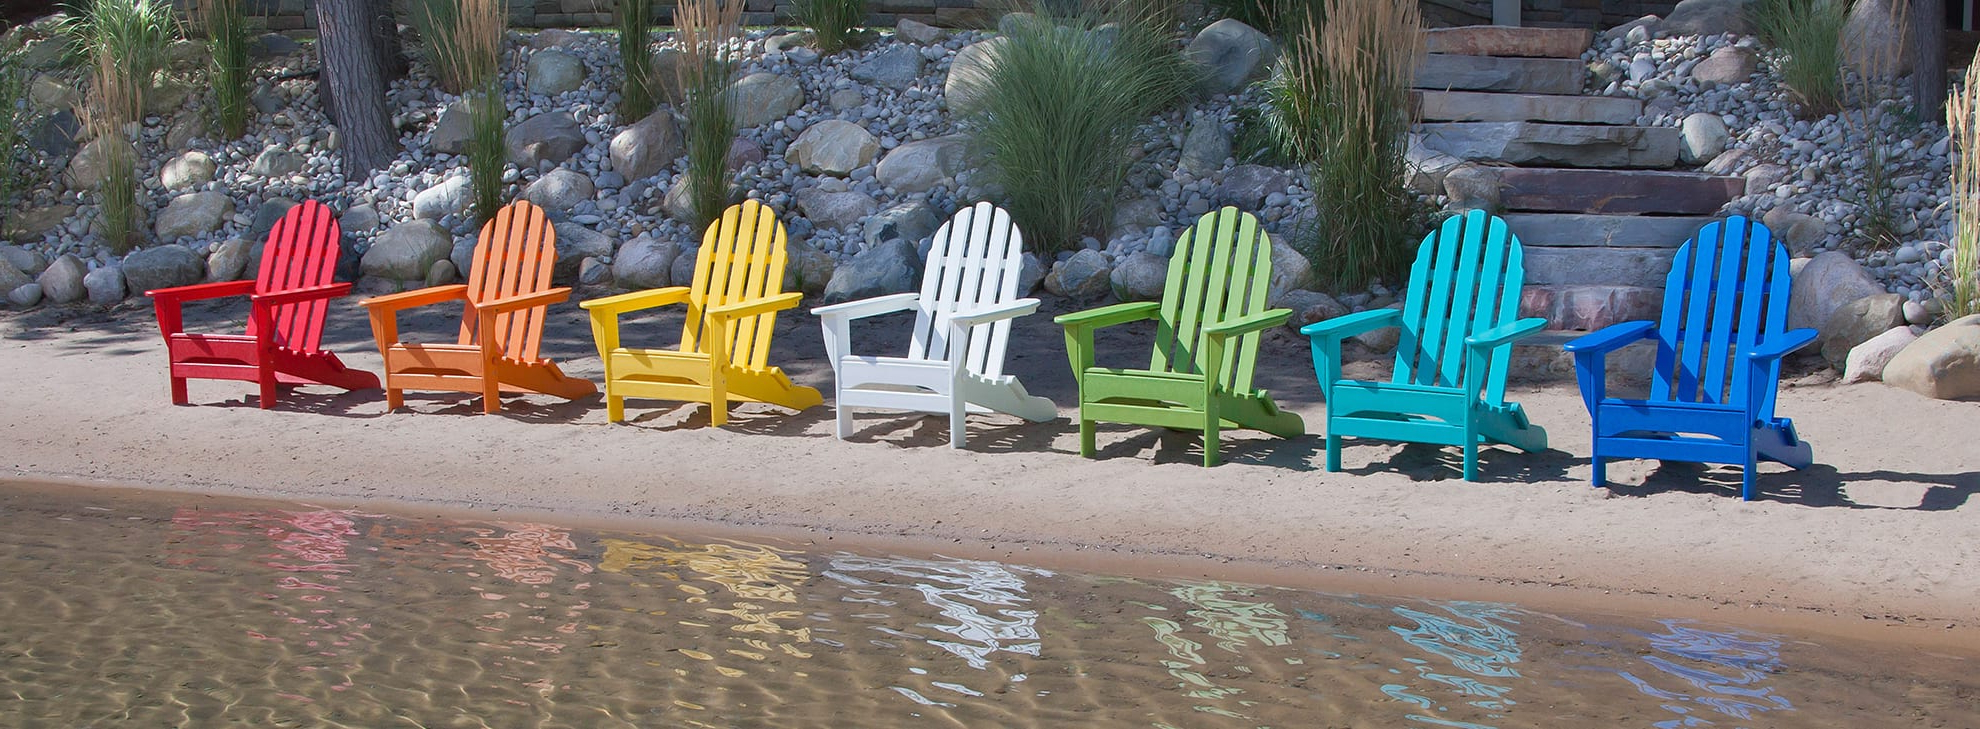 Sunset Patio Sling Folding Chairs With Headrest Throughout Well Known Adirondack Chairs (View 19 of 25)